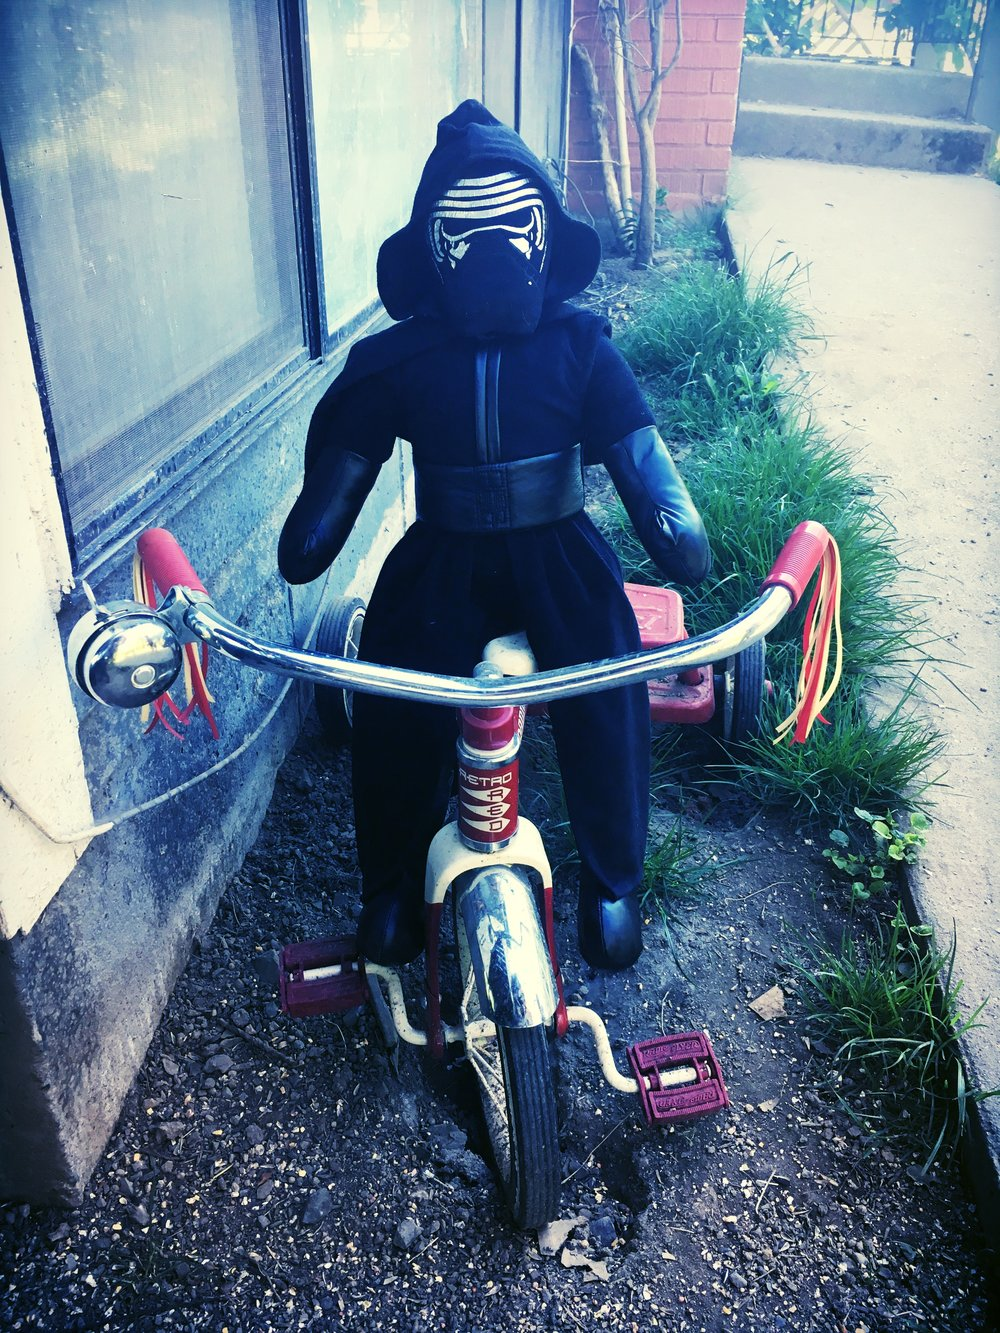 Sounds like Kylo Ren will have to ride his trike to school on Wednesday.